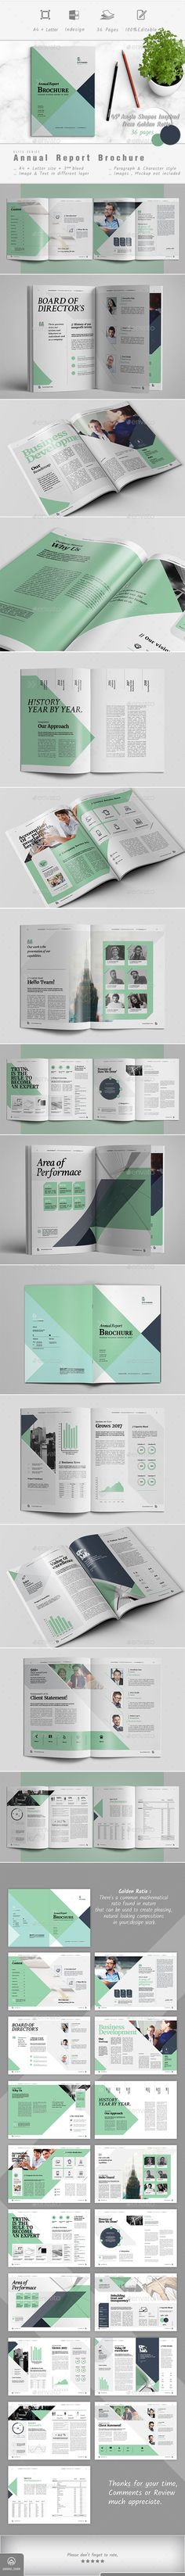 Annual Report - #Corporate #Brochures Download here: https://graphicriver.net/item/annual-report/19206237?ref=alena994